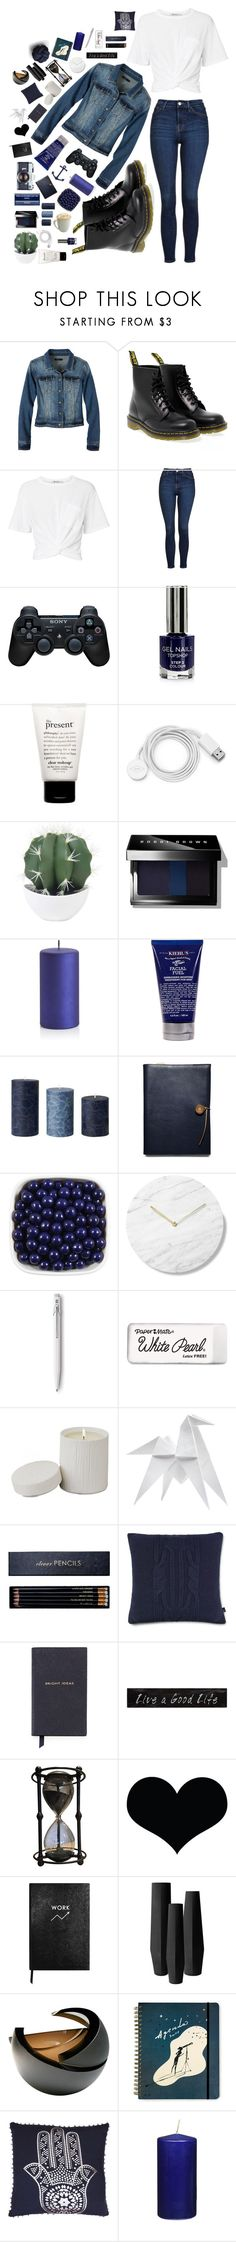 """""""// I spend too much time thinking about the past \\"""" by addicted-to-a-memory ❤ liked on Polyvore featuring prAna, Dr. Martens, T By Alexander Wang, Topshop, Sony, philosophy, FOSSIL, Dulce, Bobbi Brown Cosmetics and Crate and Barrel"""